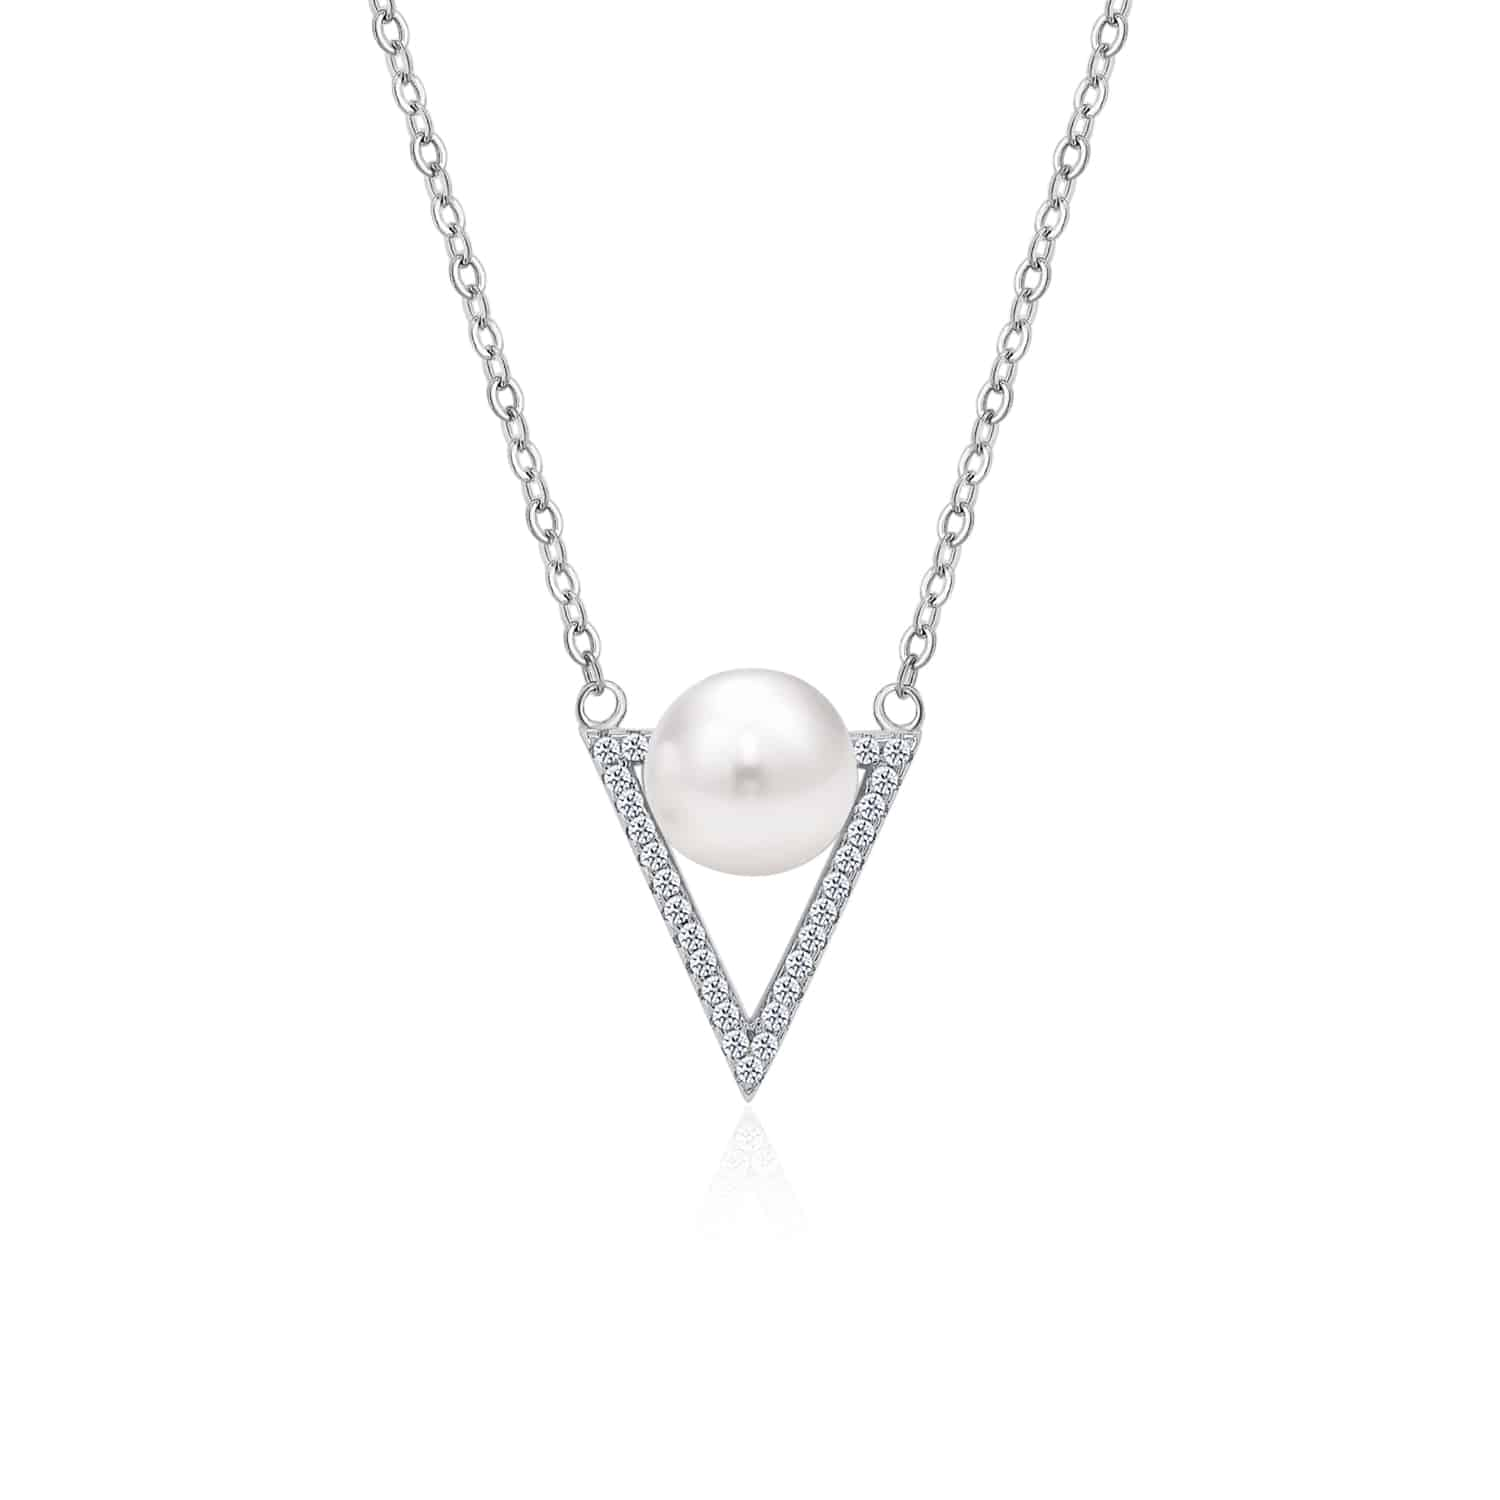 Shandy Pearl Necklace